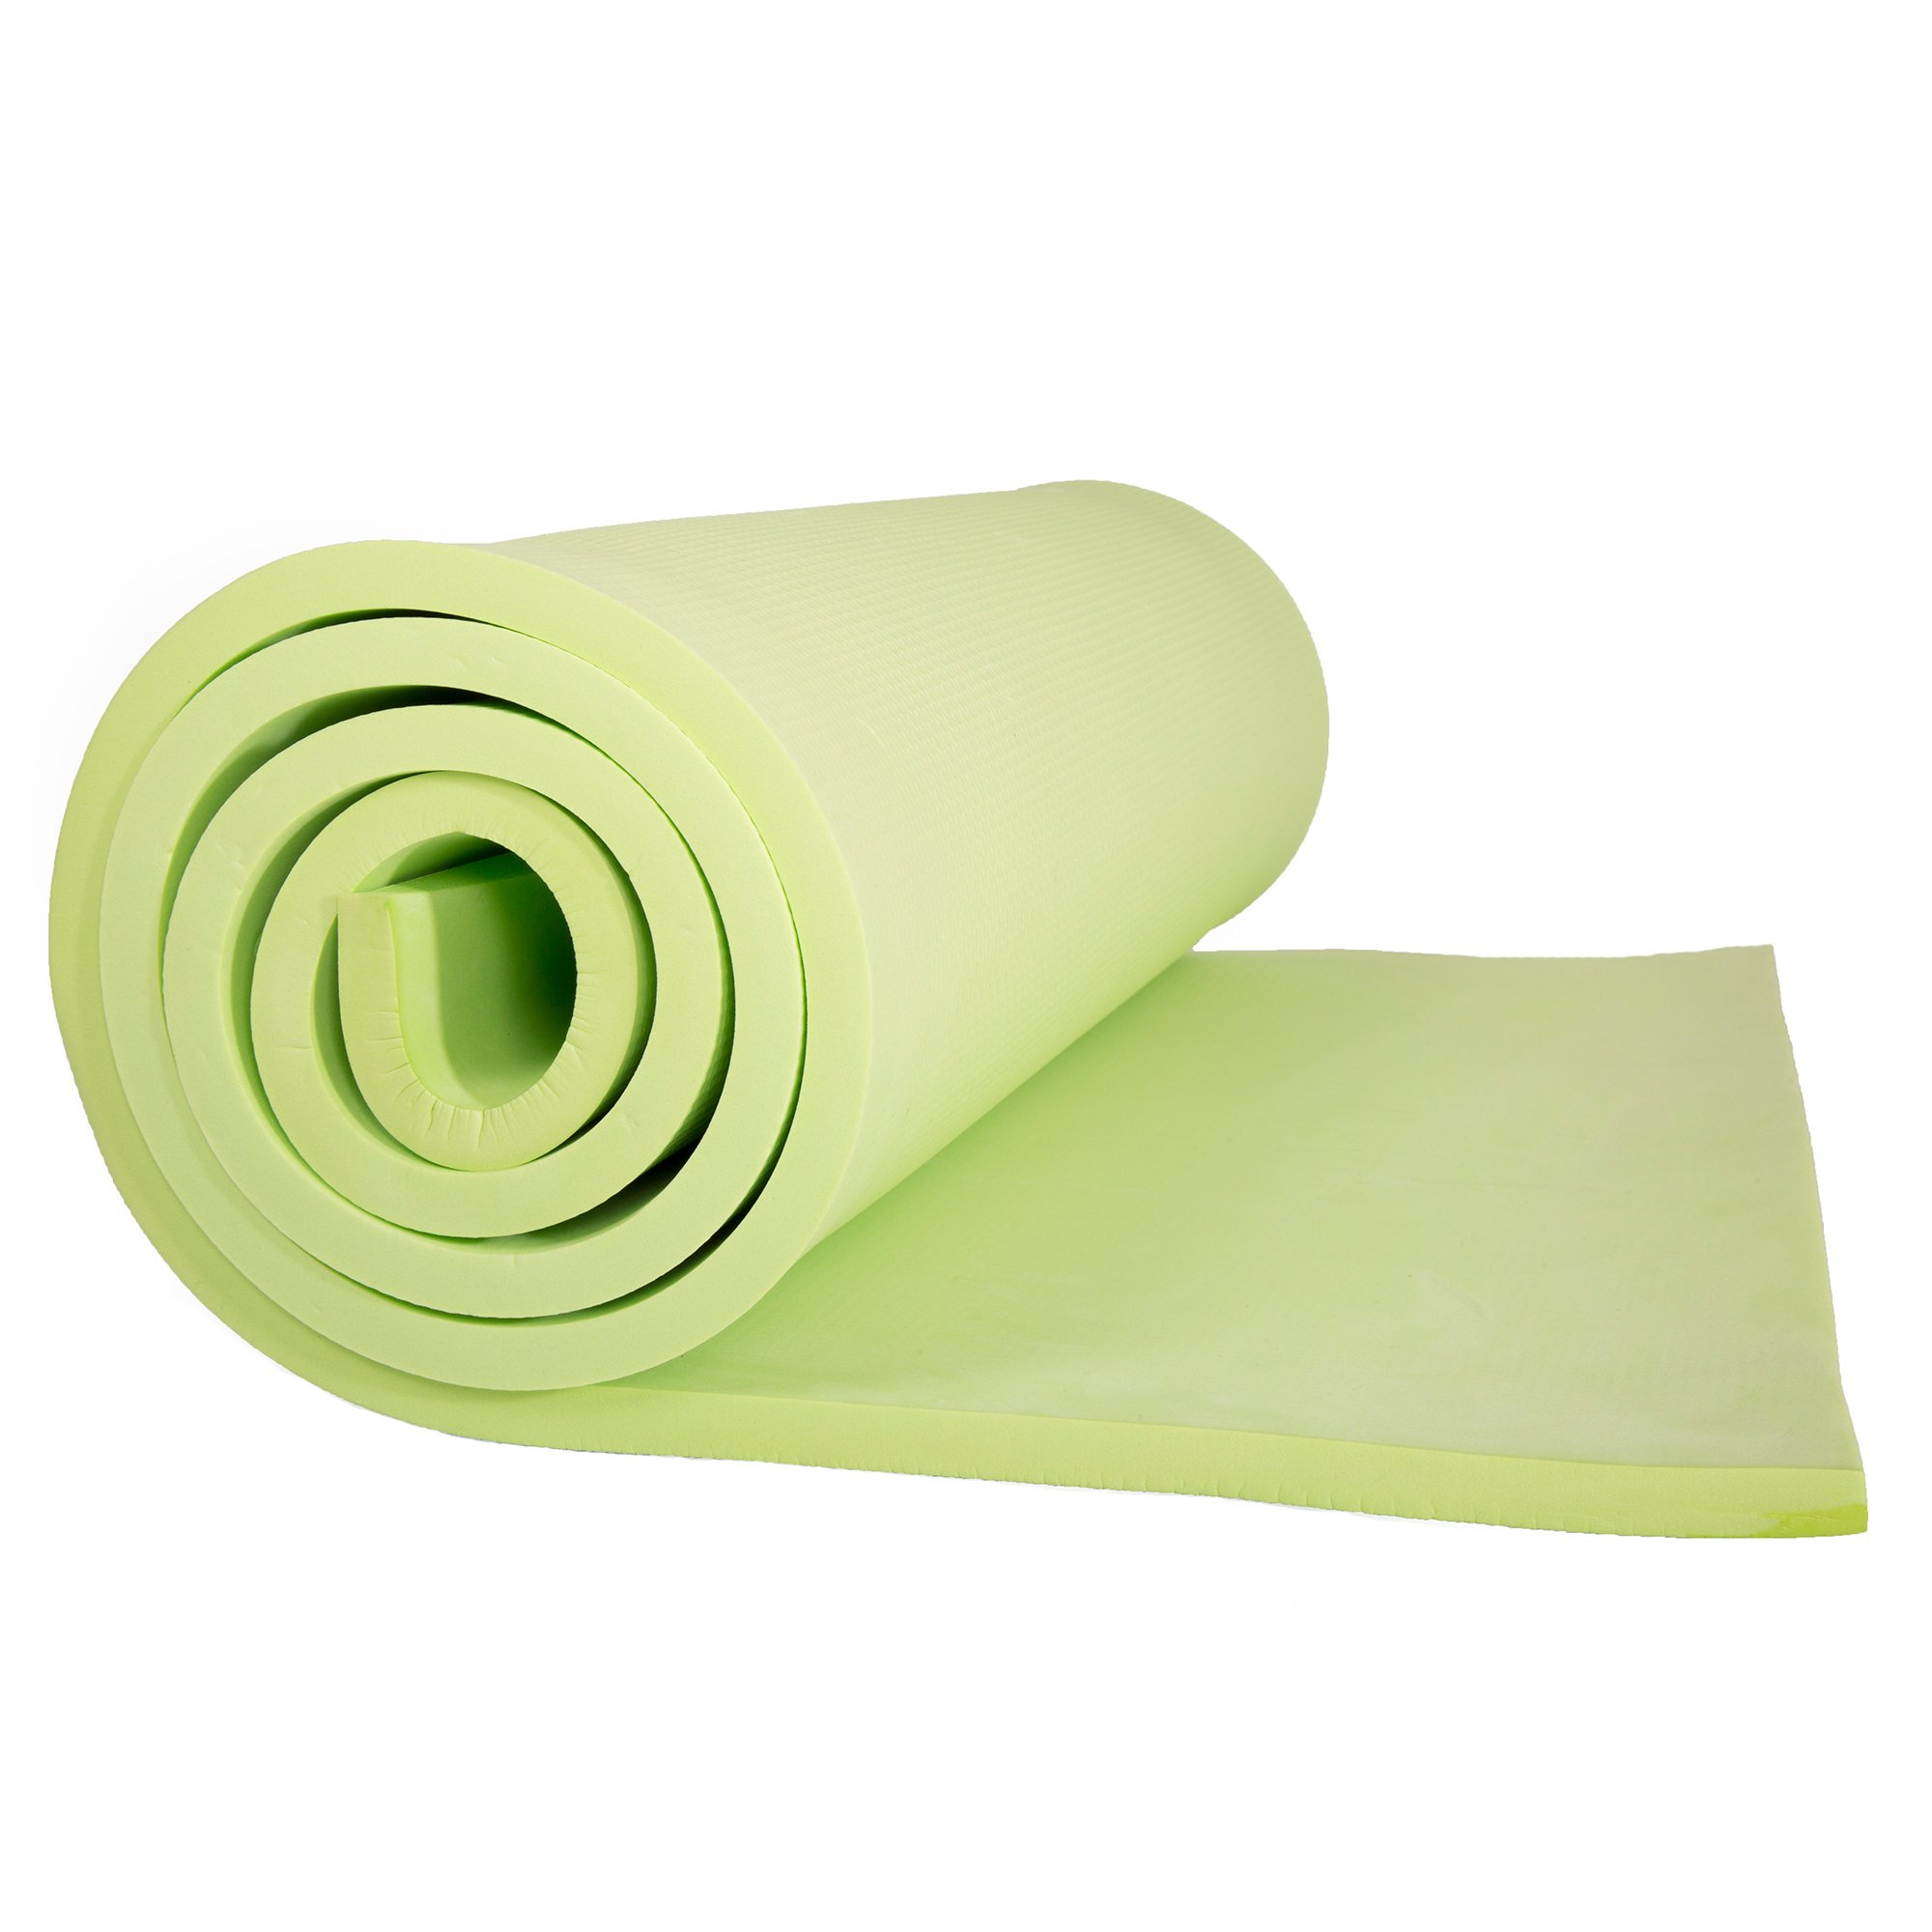 Sleeping Pad, Lightweight Non Slip Foam Mat with Carry Strap by Wakeman Outdoors (Thick Mattress for Camping, Hiking, Yoga and Backpacking) (Green)